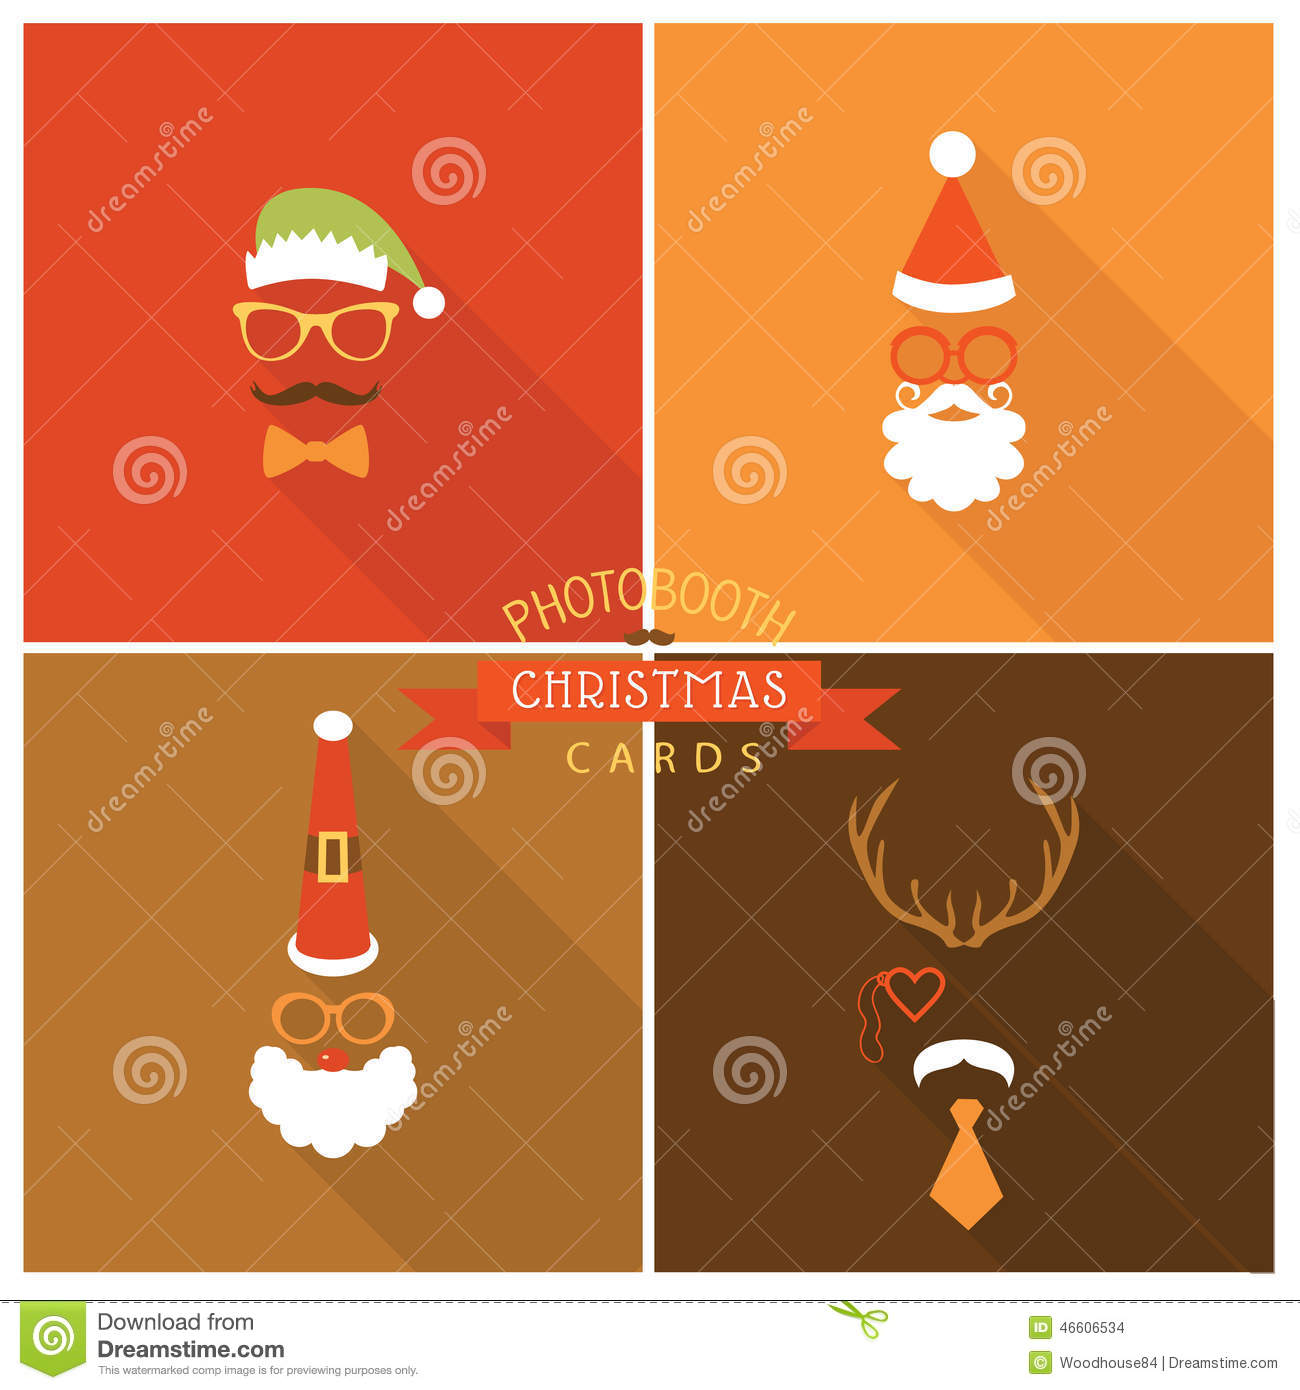 Christmas Card In Photo Booth Style Stock Vector - Illustration of ...